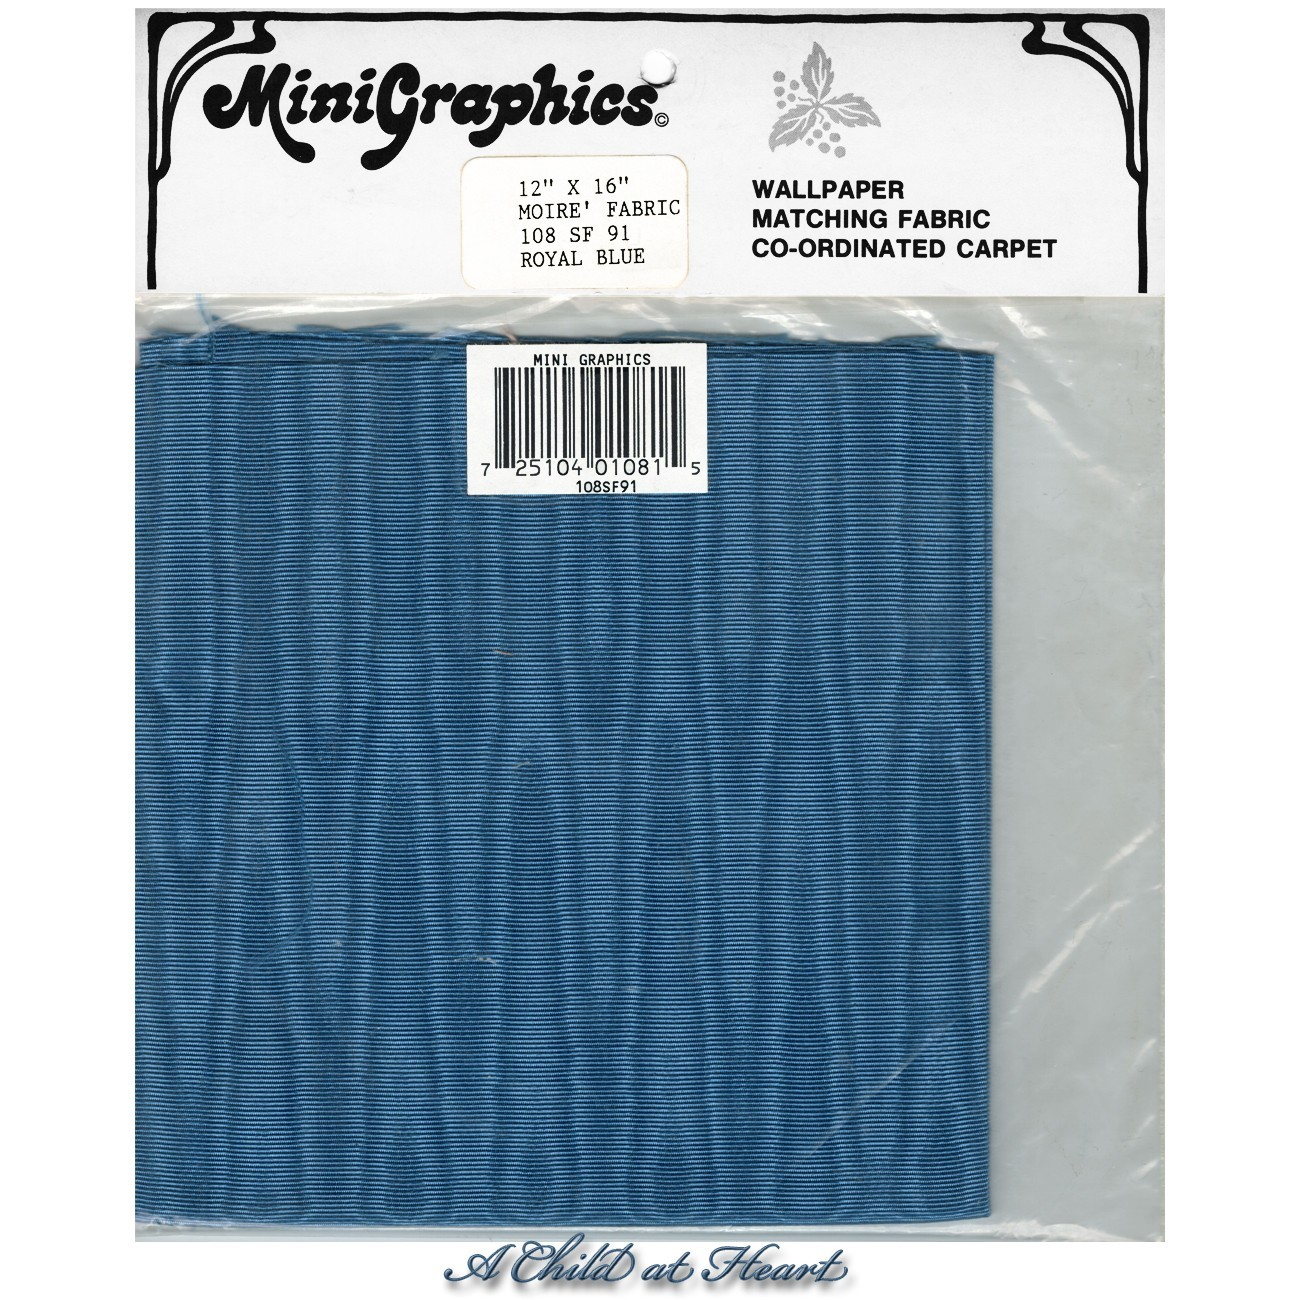 § Disc $4 Off - Moiré Fabric Royal Blue - Product Image